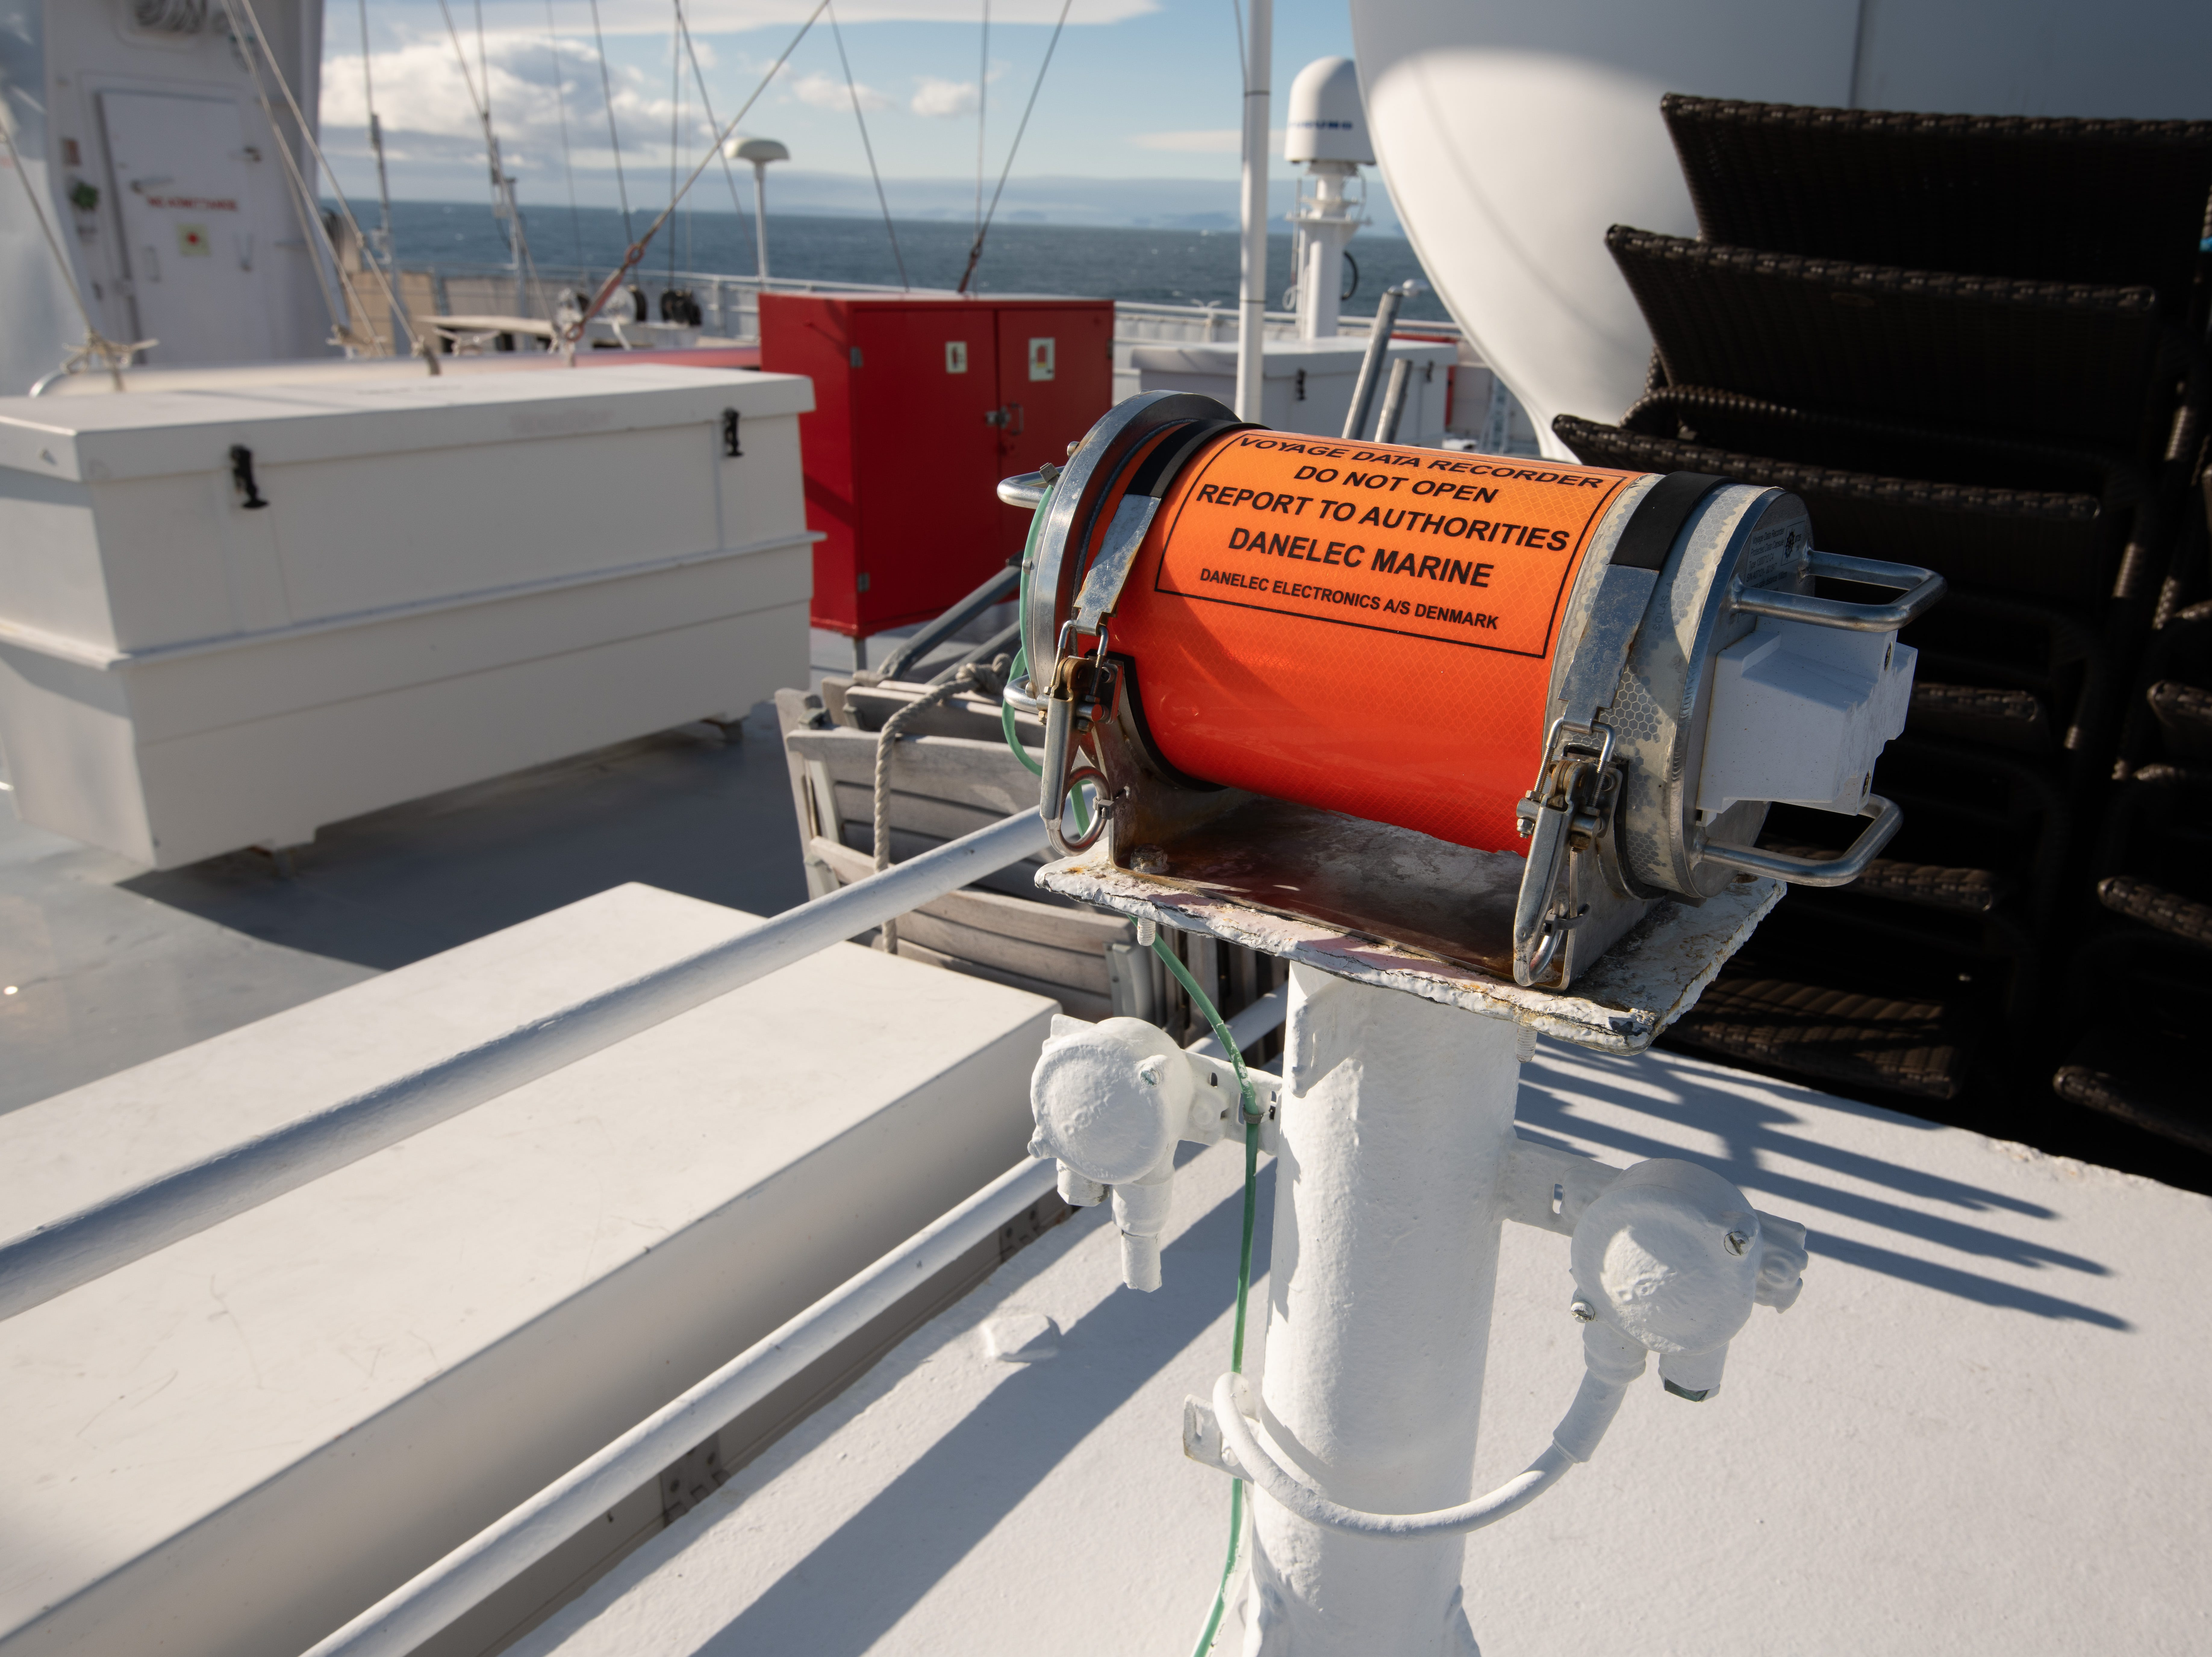 """Bremen's """"black box"""" data recorder, which is actually orange, is located at the top of the vessel on the Helicopter Deck."""